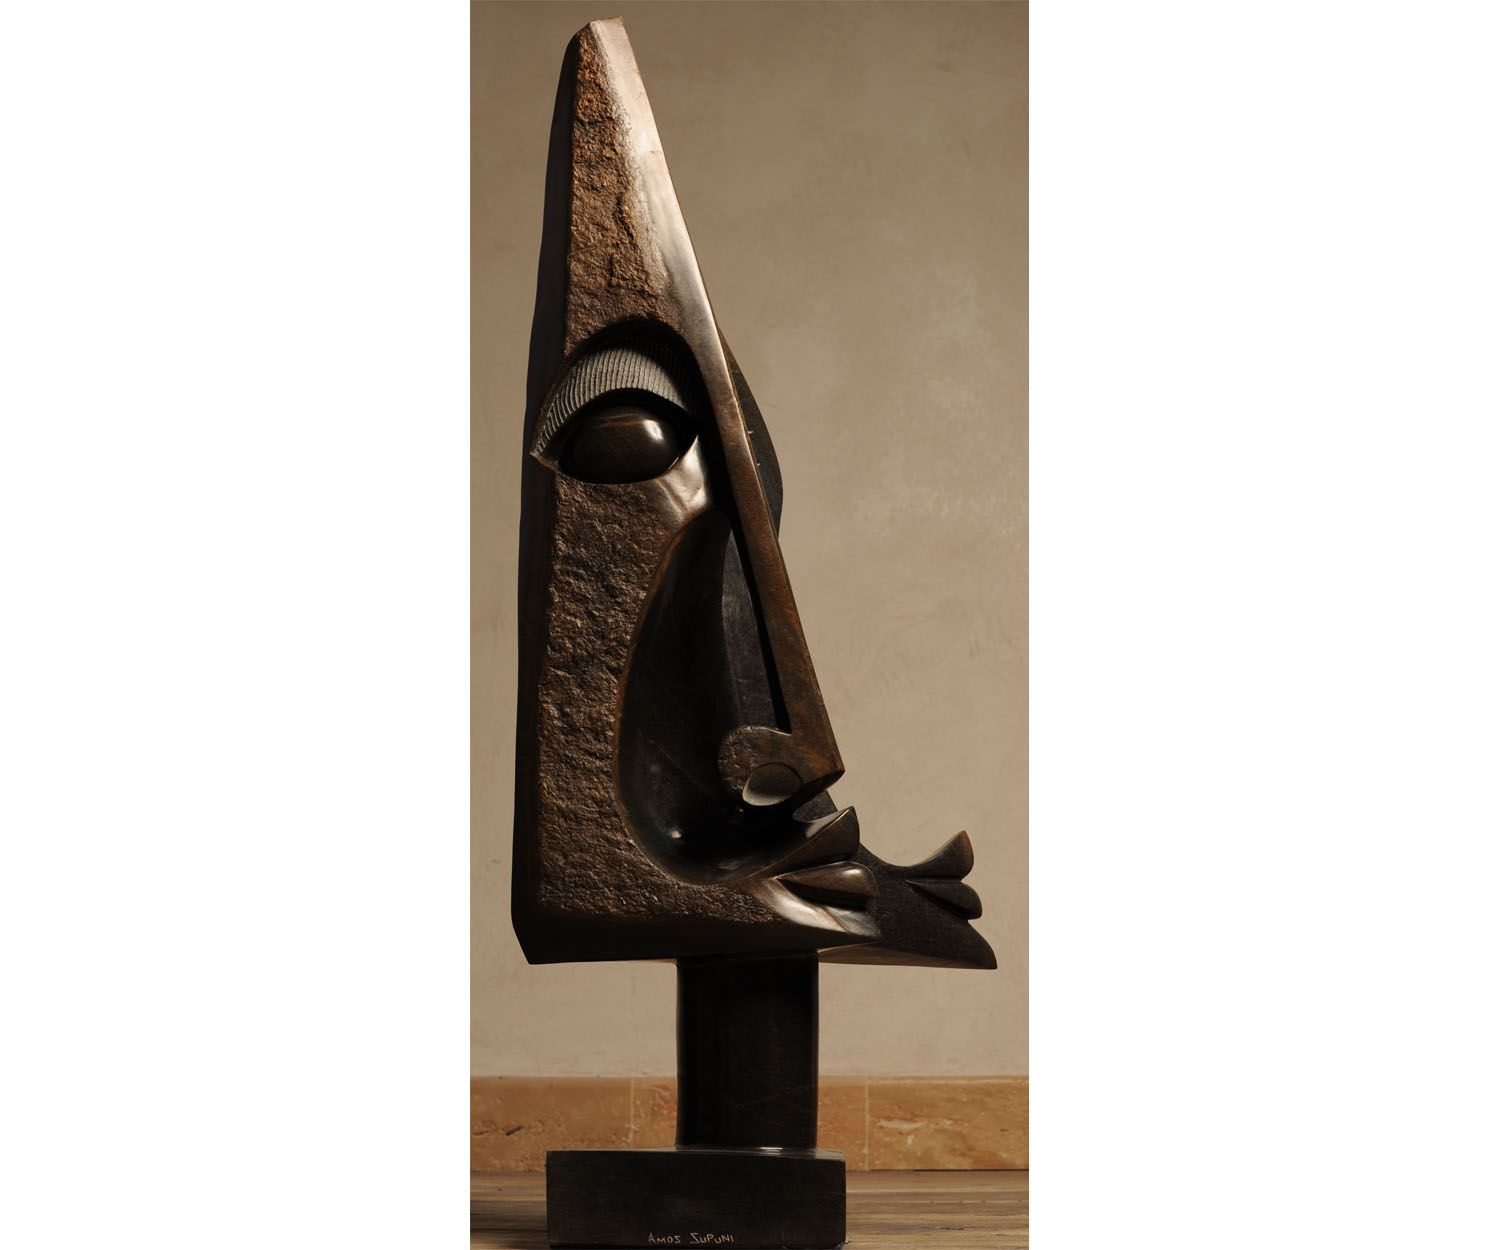 Two Faces Totem, 115 X 51 cm. Amos Supuni